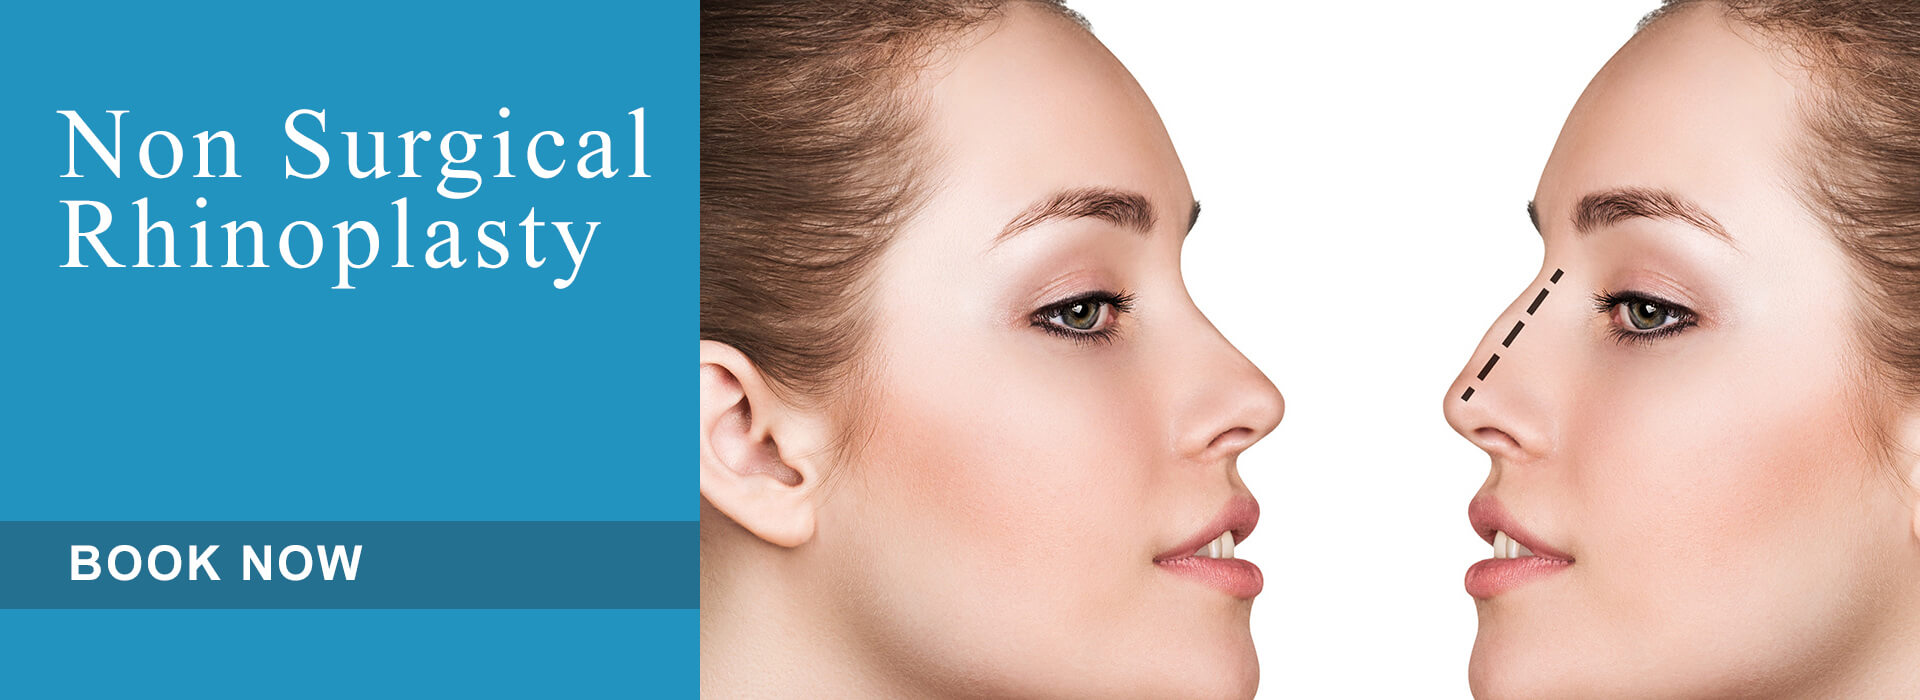 Non Surgical Rhinoplasty Aesthetic Treatment